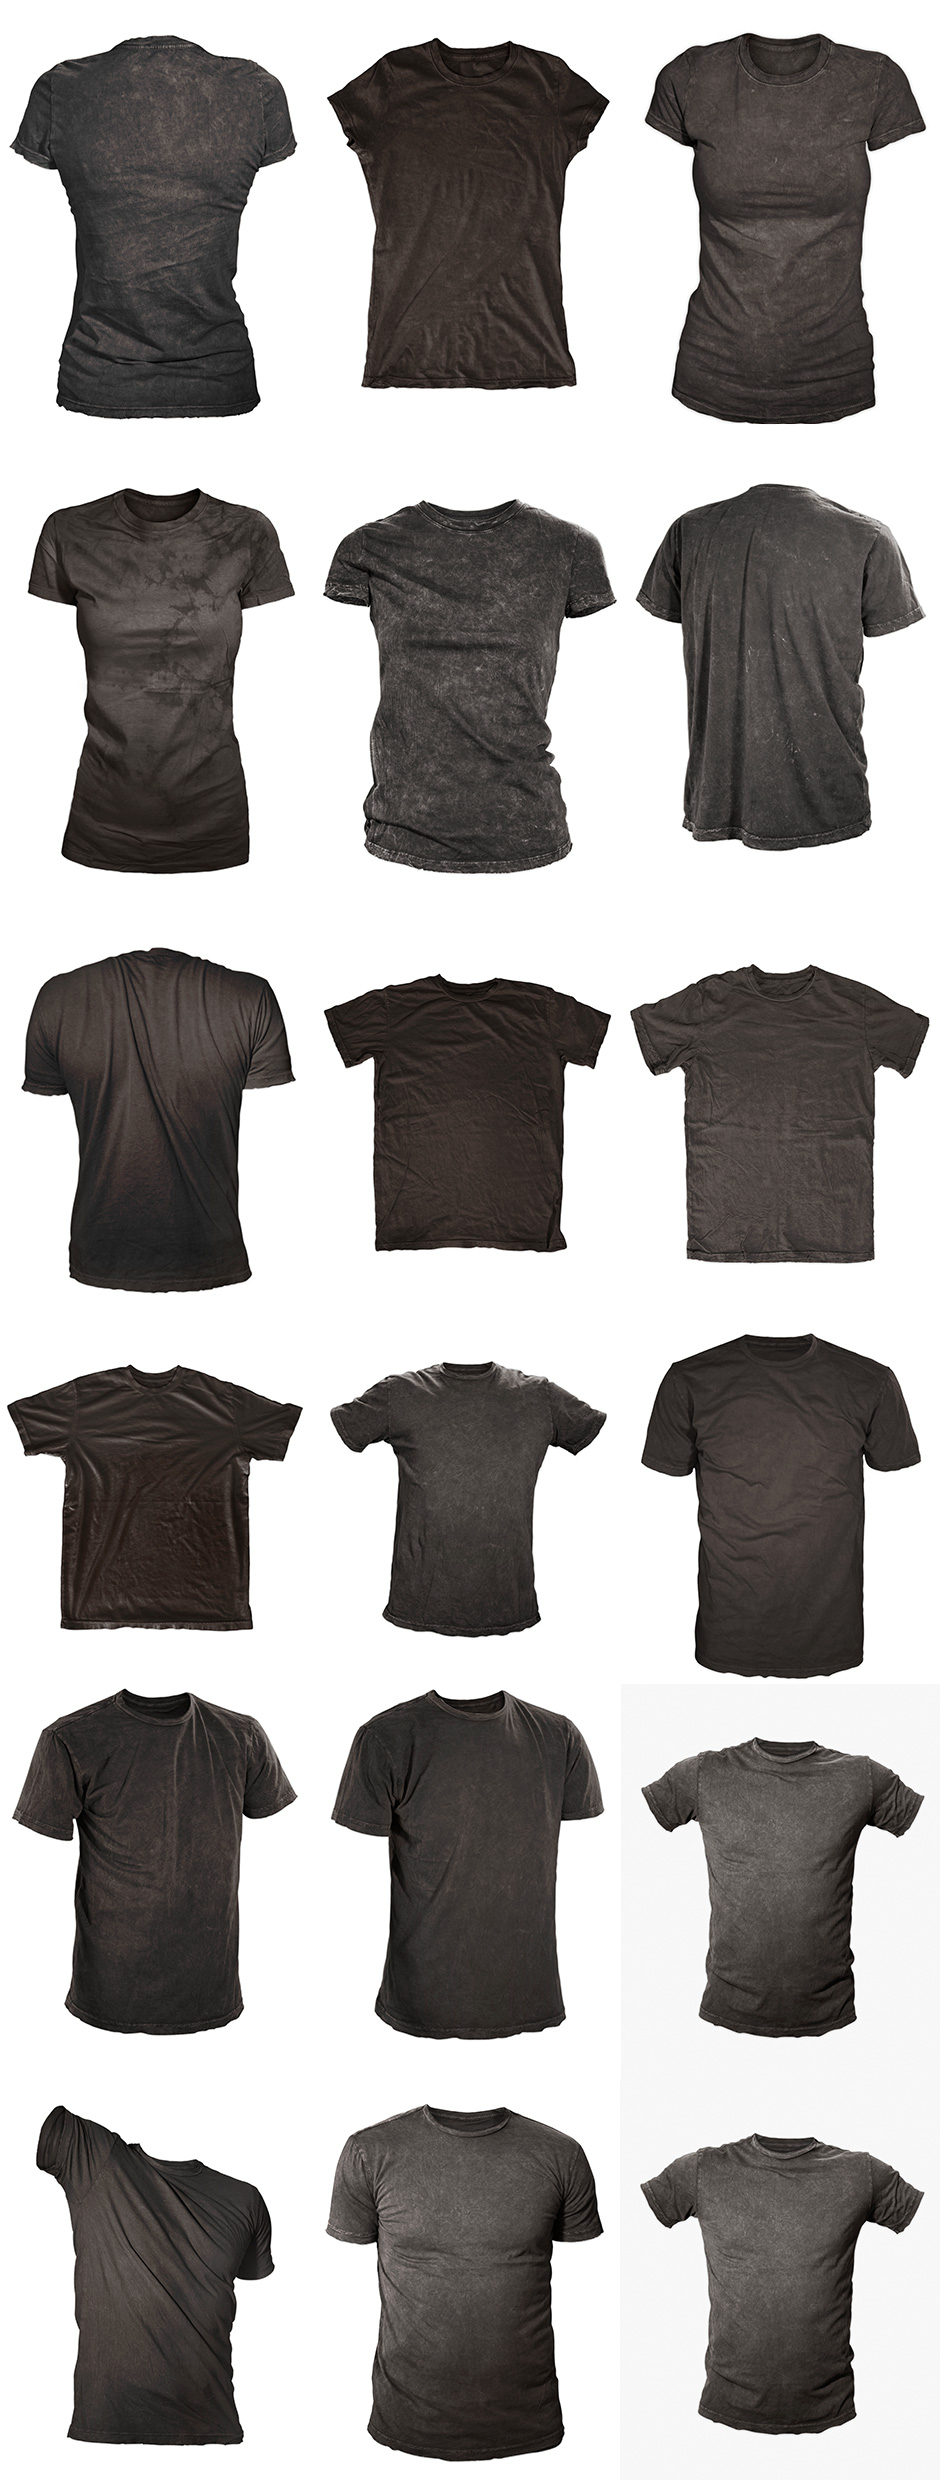 Black t shirt mock up - Blank Black T Shirt Mockup Distressed T Shirts Mockupblank Black T Shirt Mockup